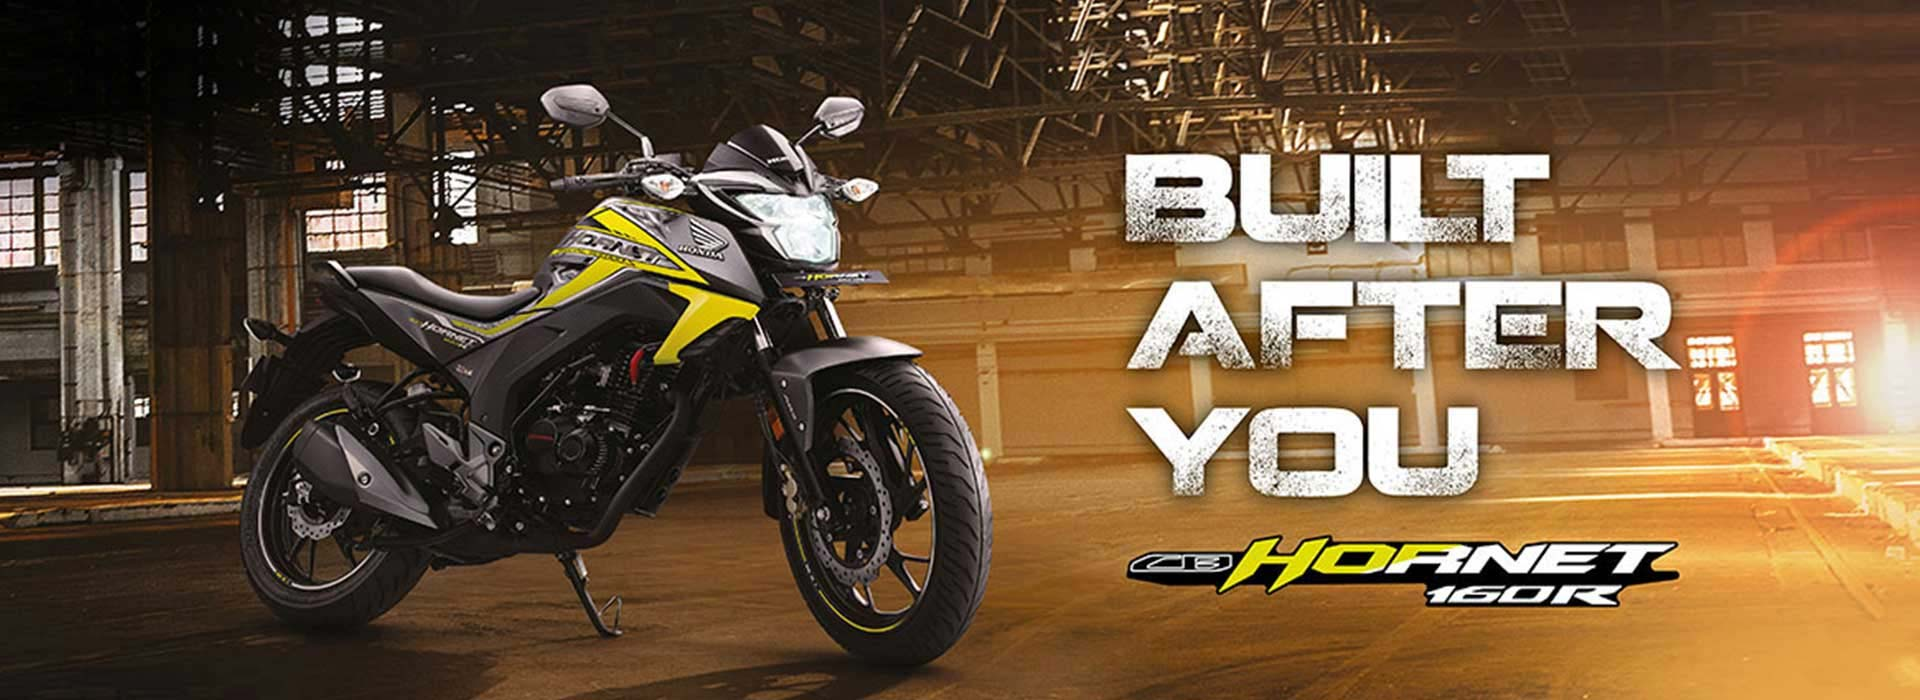 Aadhi Honda Bikes Authorized Honda Bike Dealership Serving And